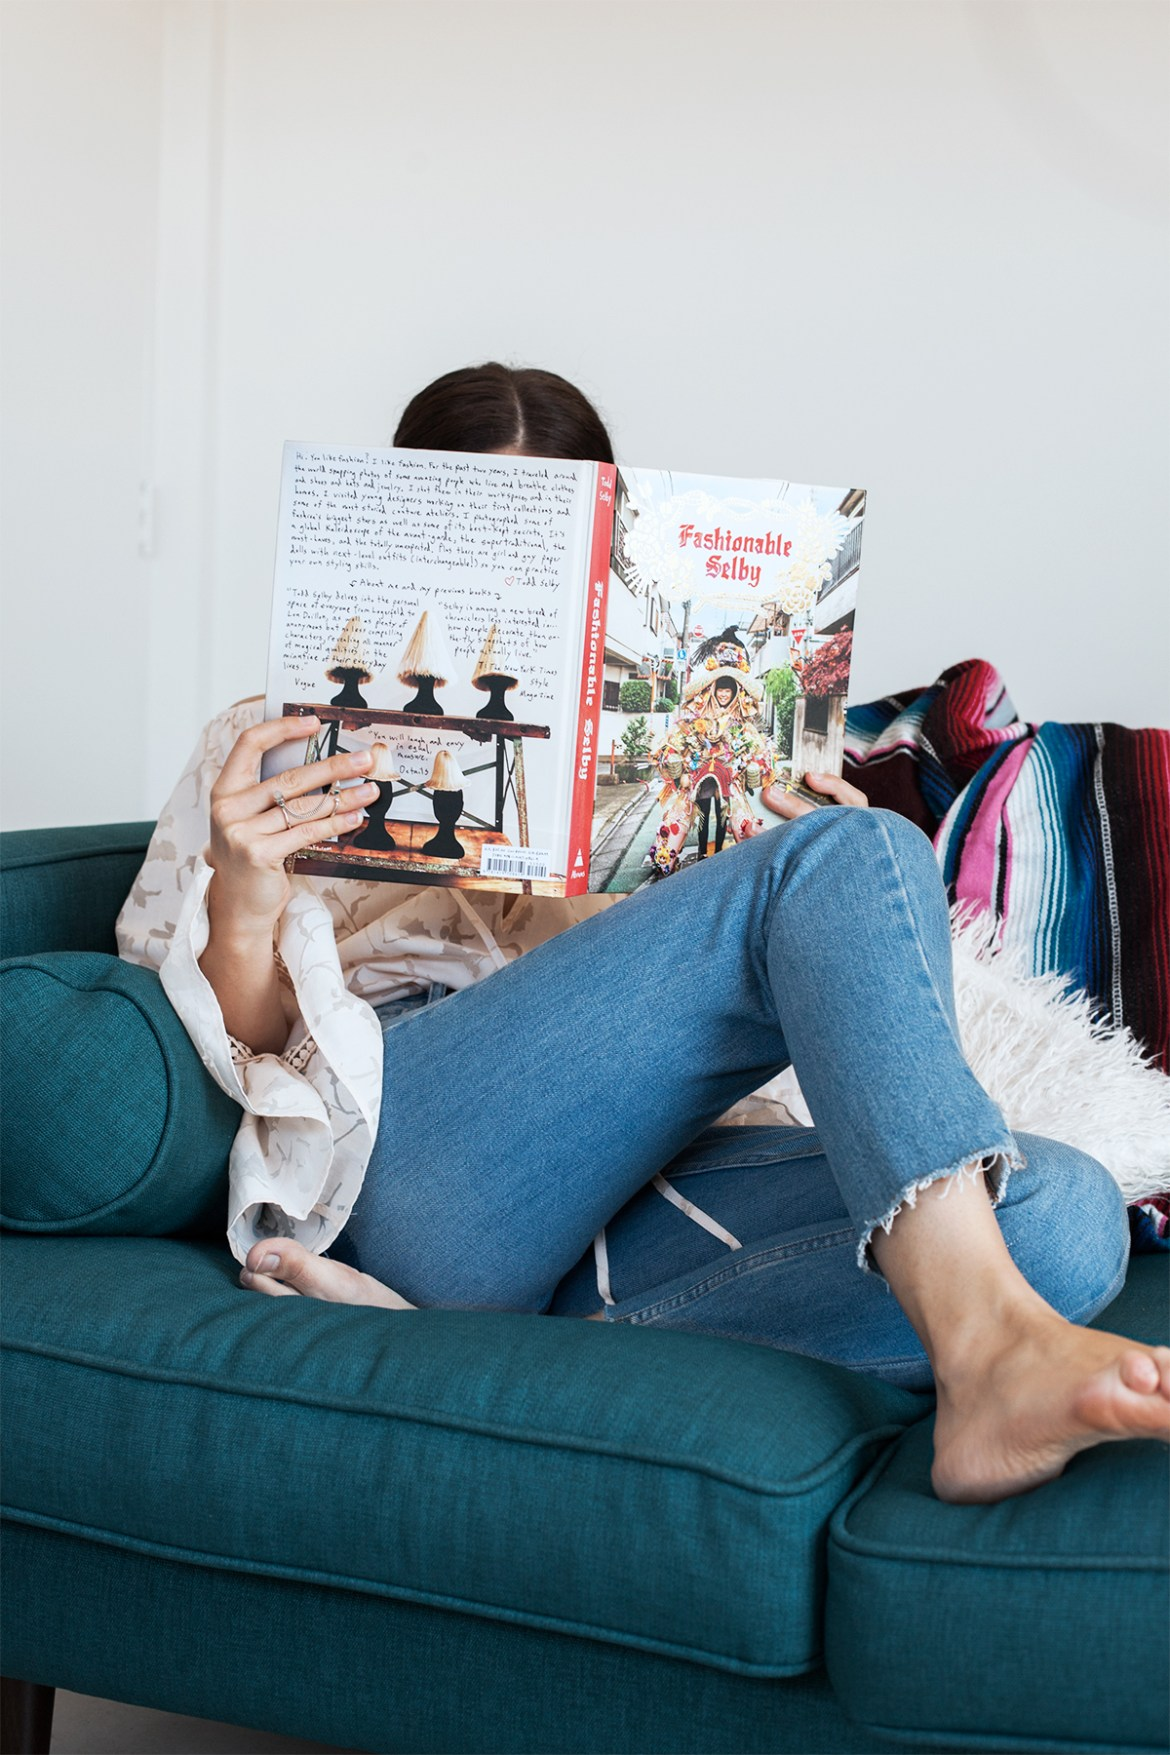 Inspiring Wit Australian fashion blogger at home in Stevie May blouse reading The Fashionable Selby